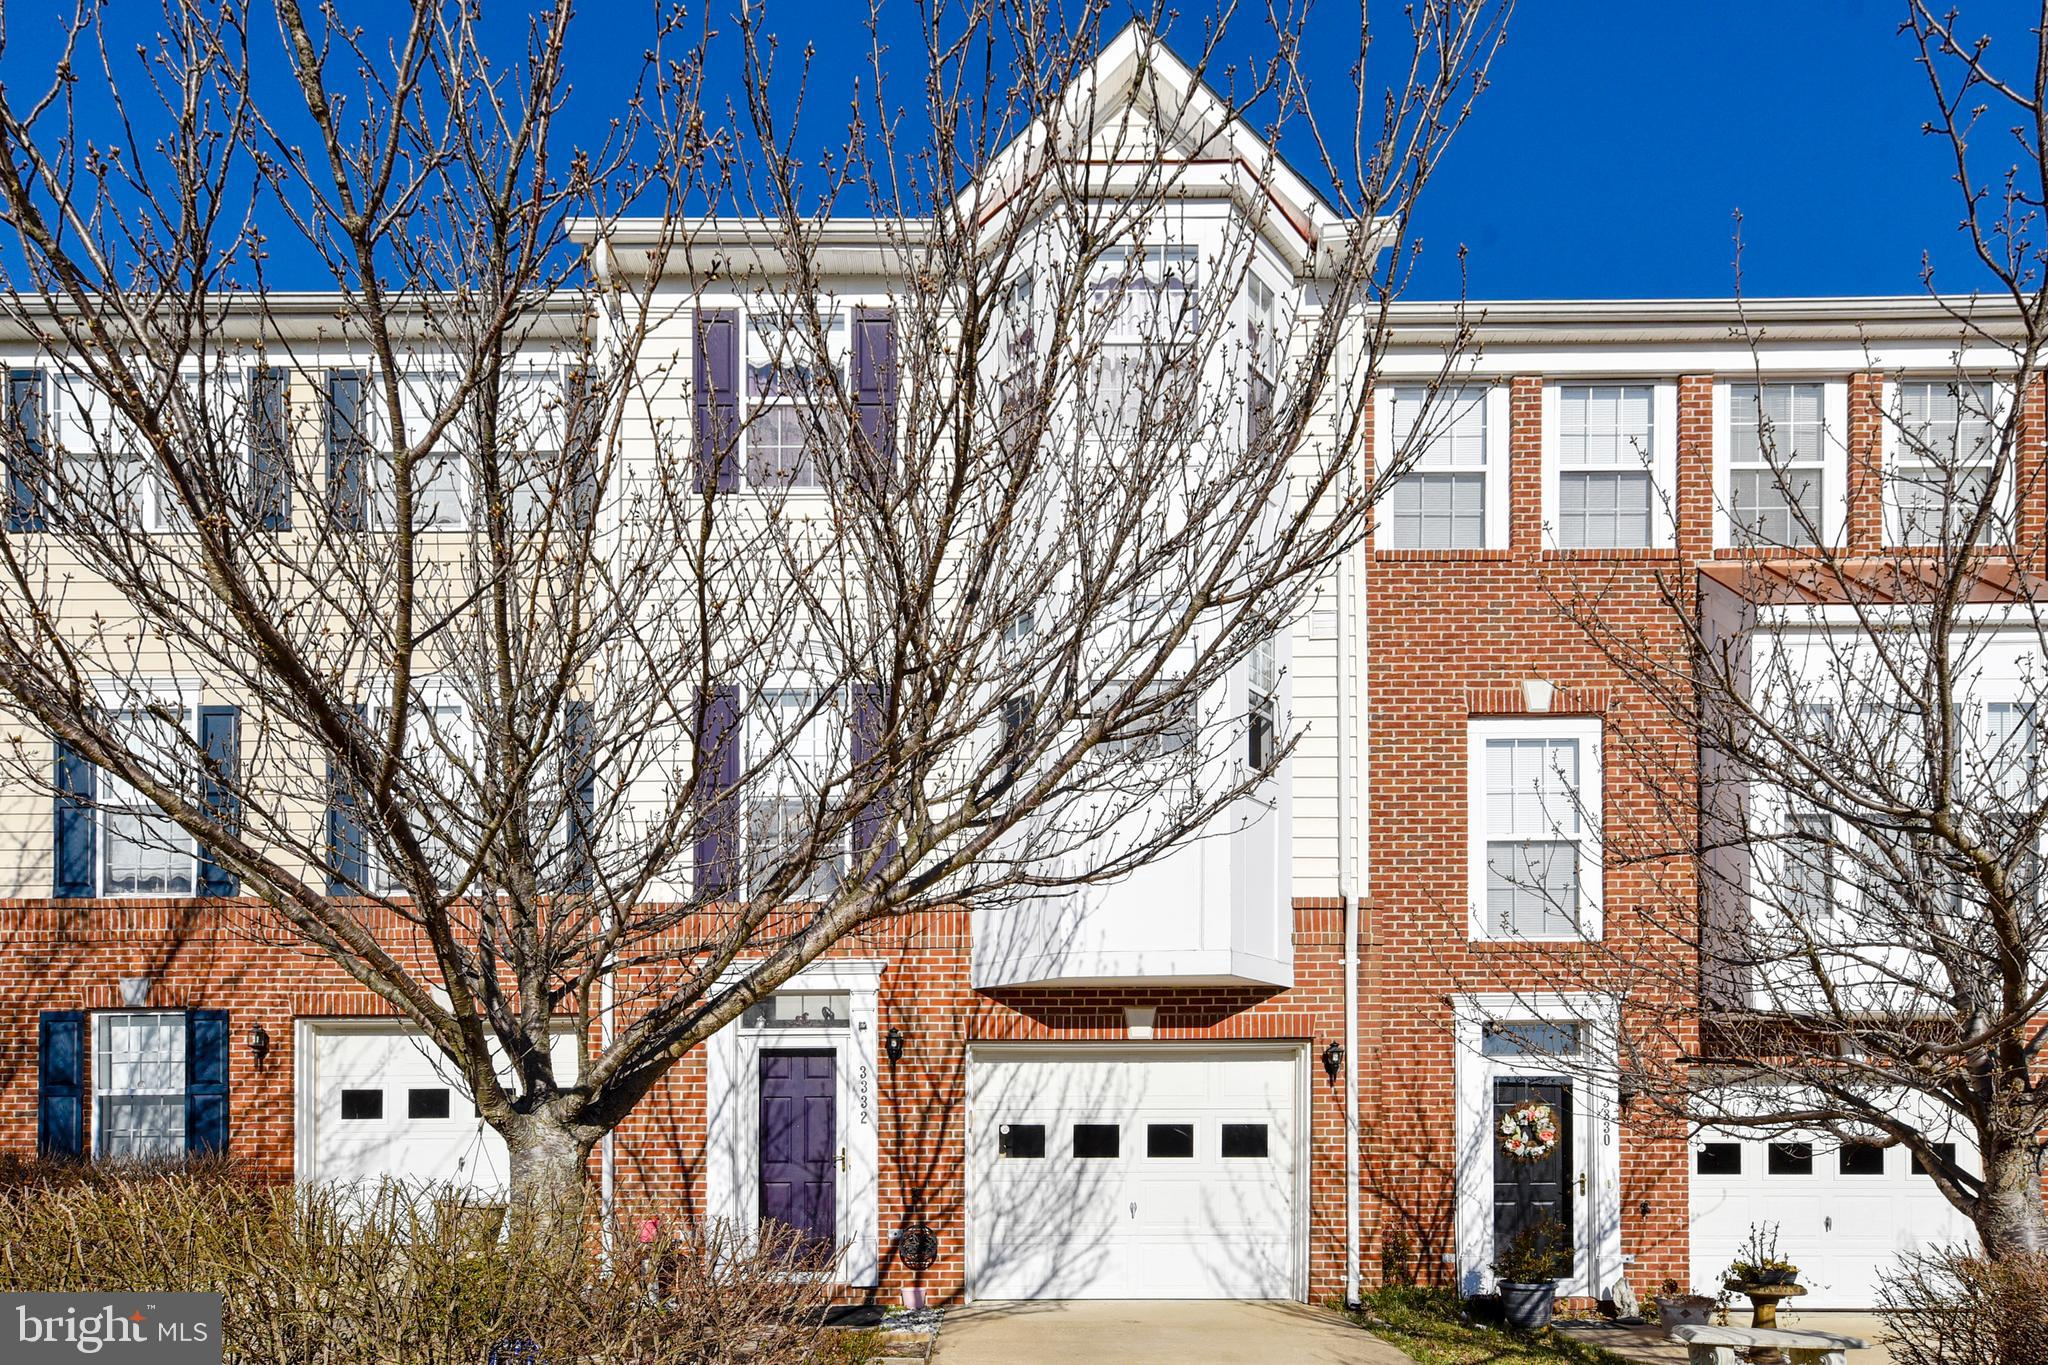 Beautiful, well maintained spacious 3-level garage townhouse. Eat in Kitchen plus formal dining area and huge living room. Master bedroom has attached bath with two sinks, walk-in closet, and vaulted ceiling. Hardwood floor throughout the property.